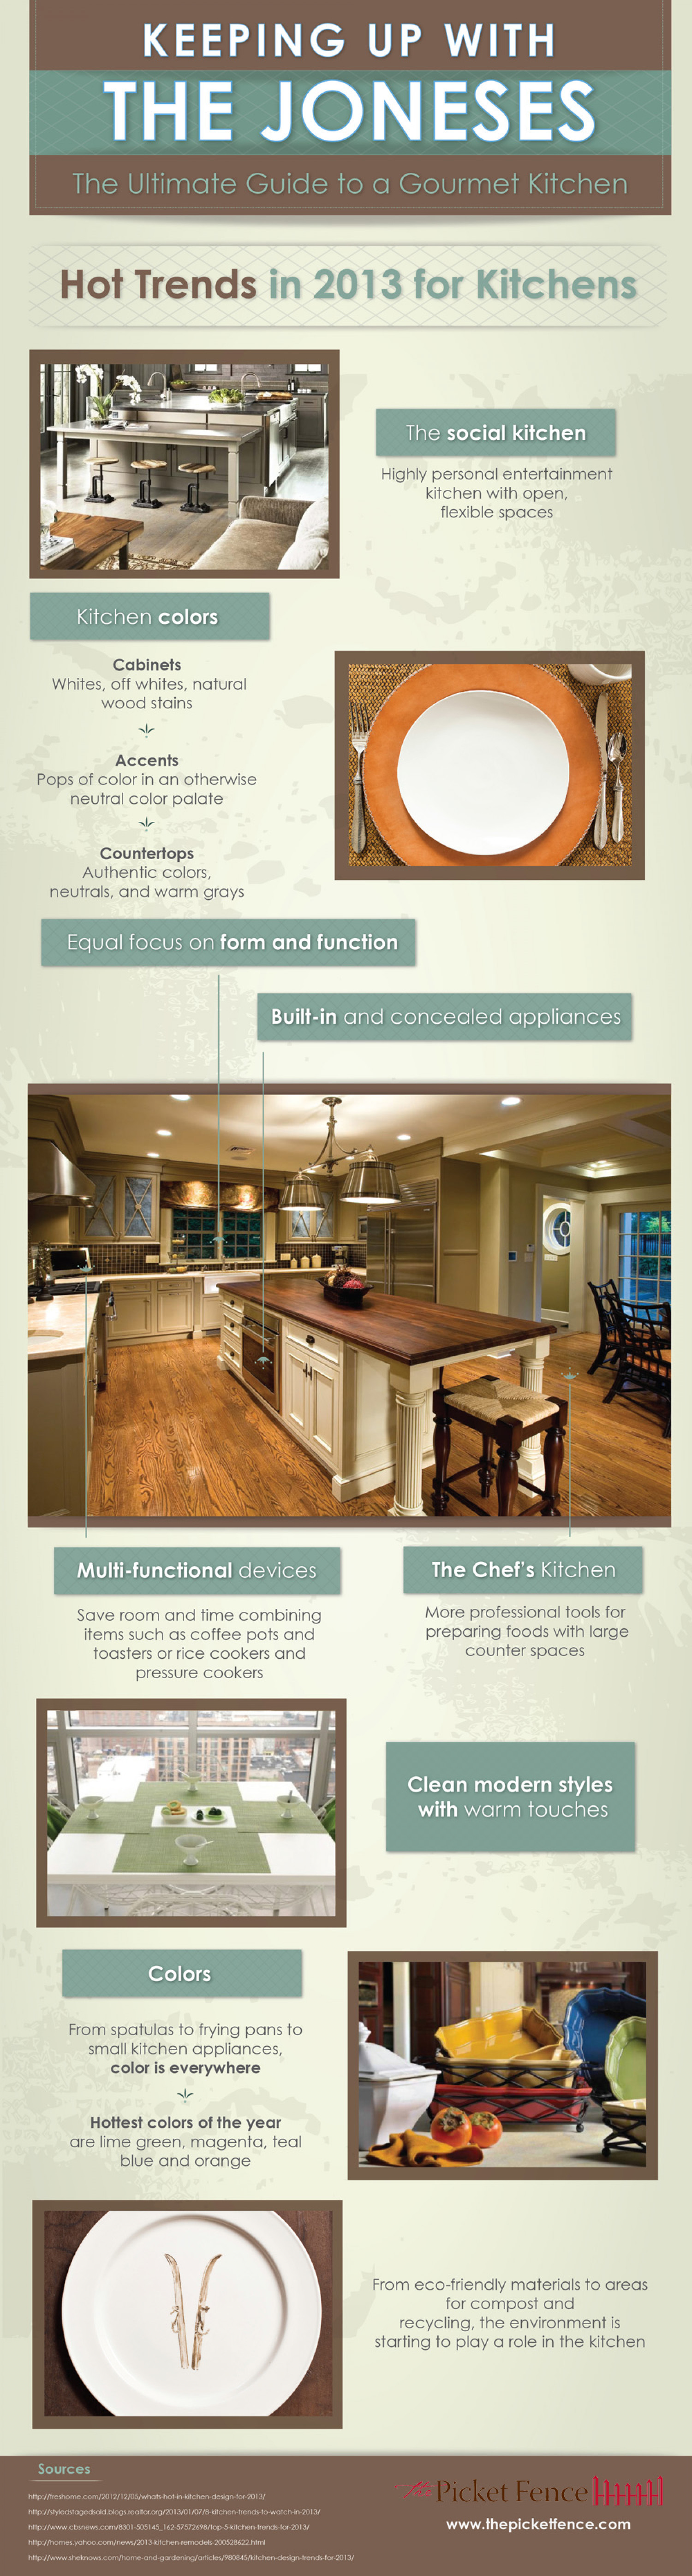 Keeping up with the Joneses - The Ultimate Guide to a Gourmet Kitchen Infographic